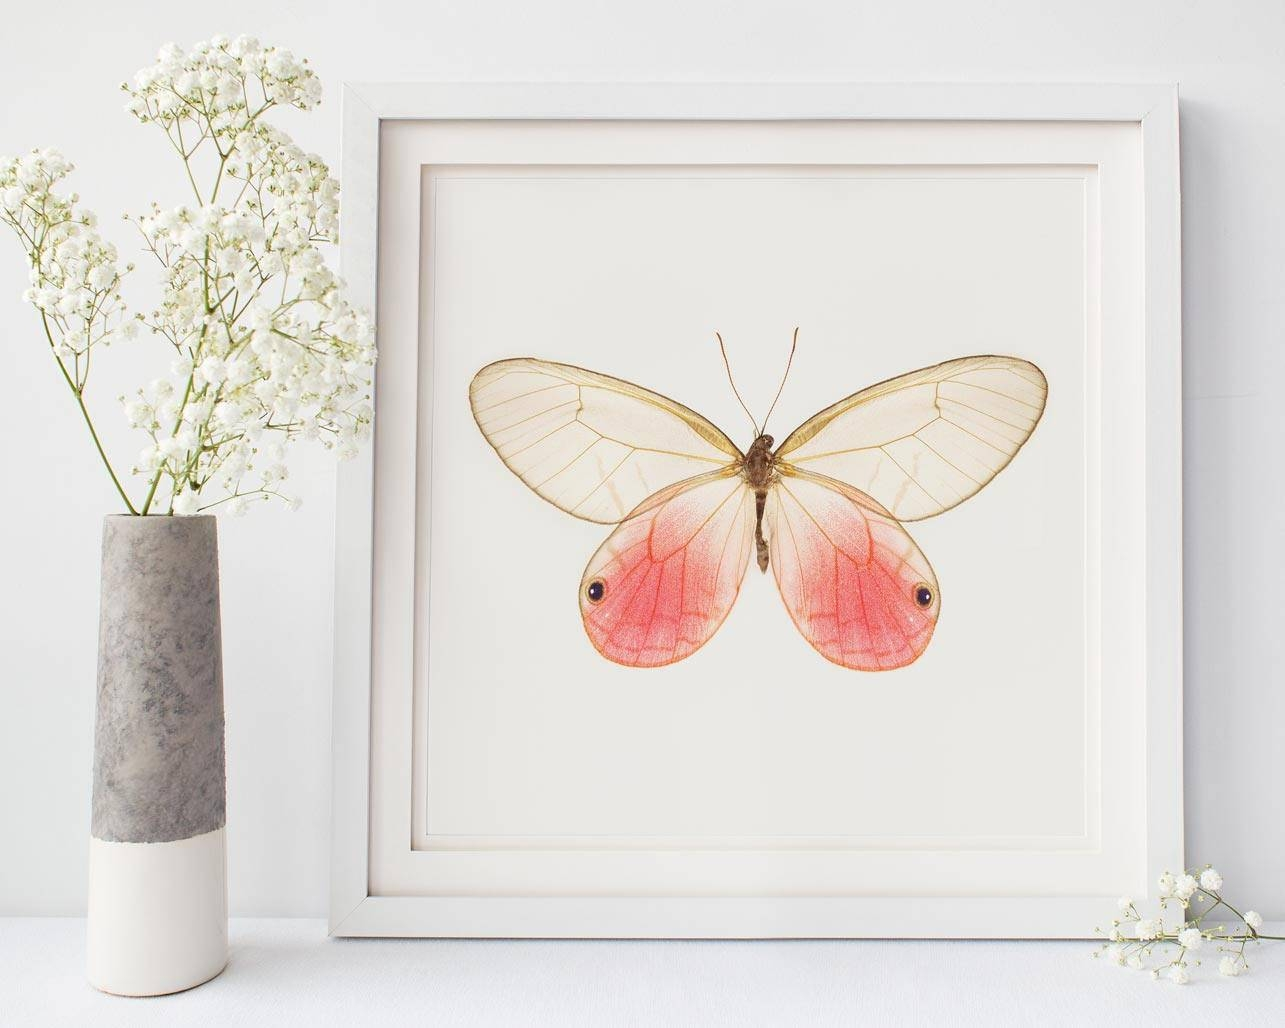 Pink Butterfly Photo Insect Art Butterfly Room Decor Pertaining To Newest Insect Wall Art (Gallery 30 of 30)